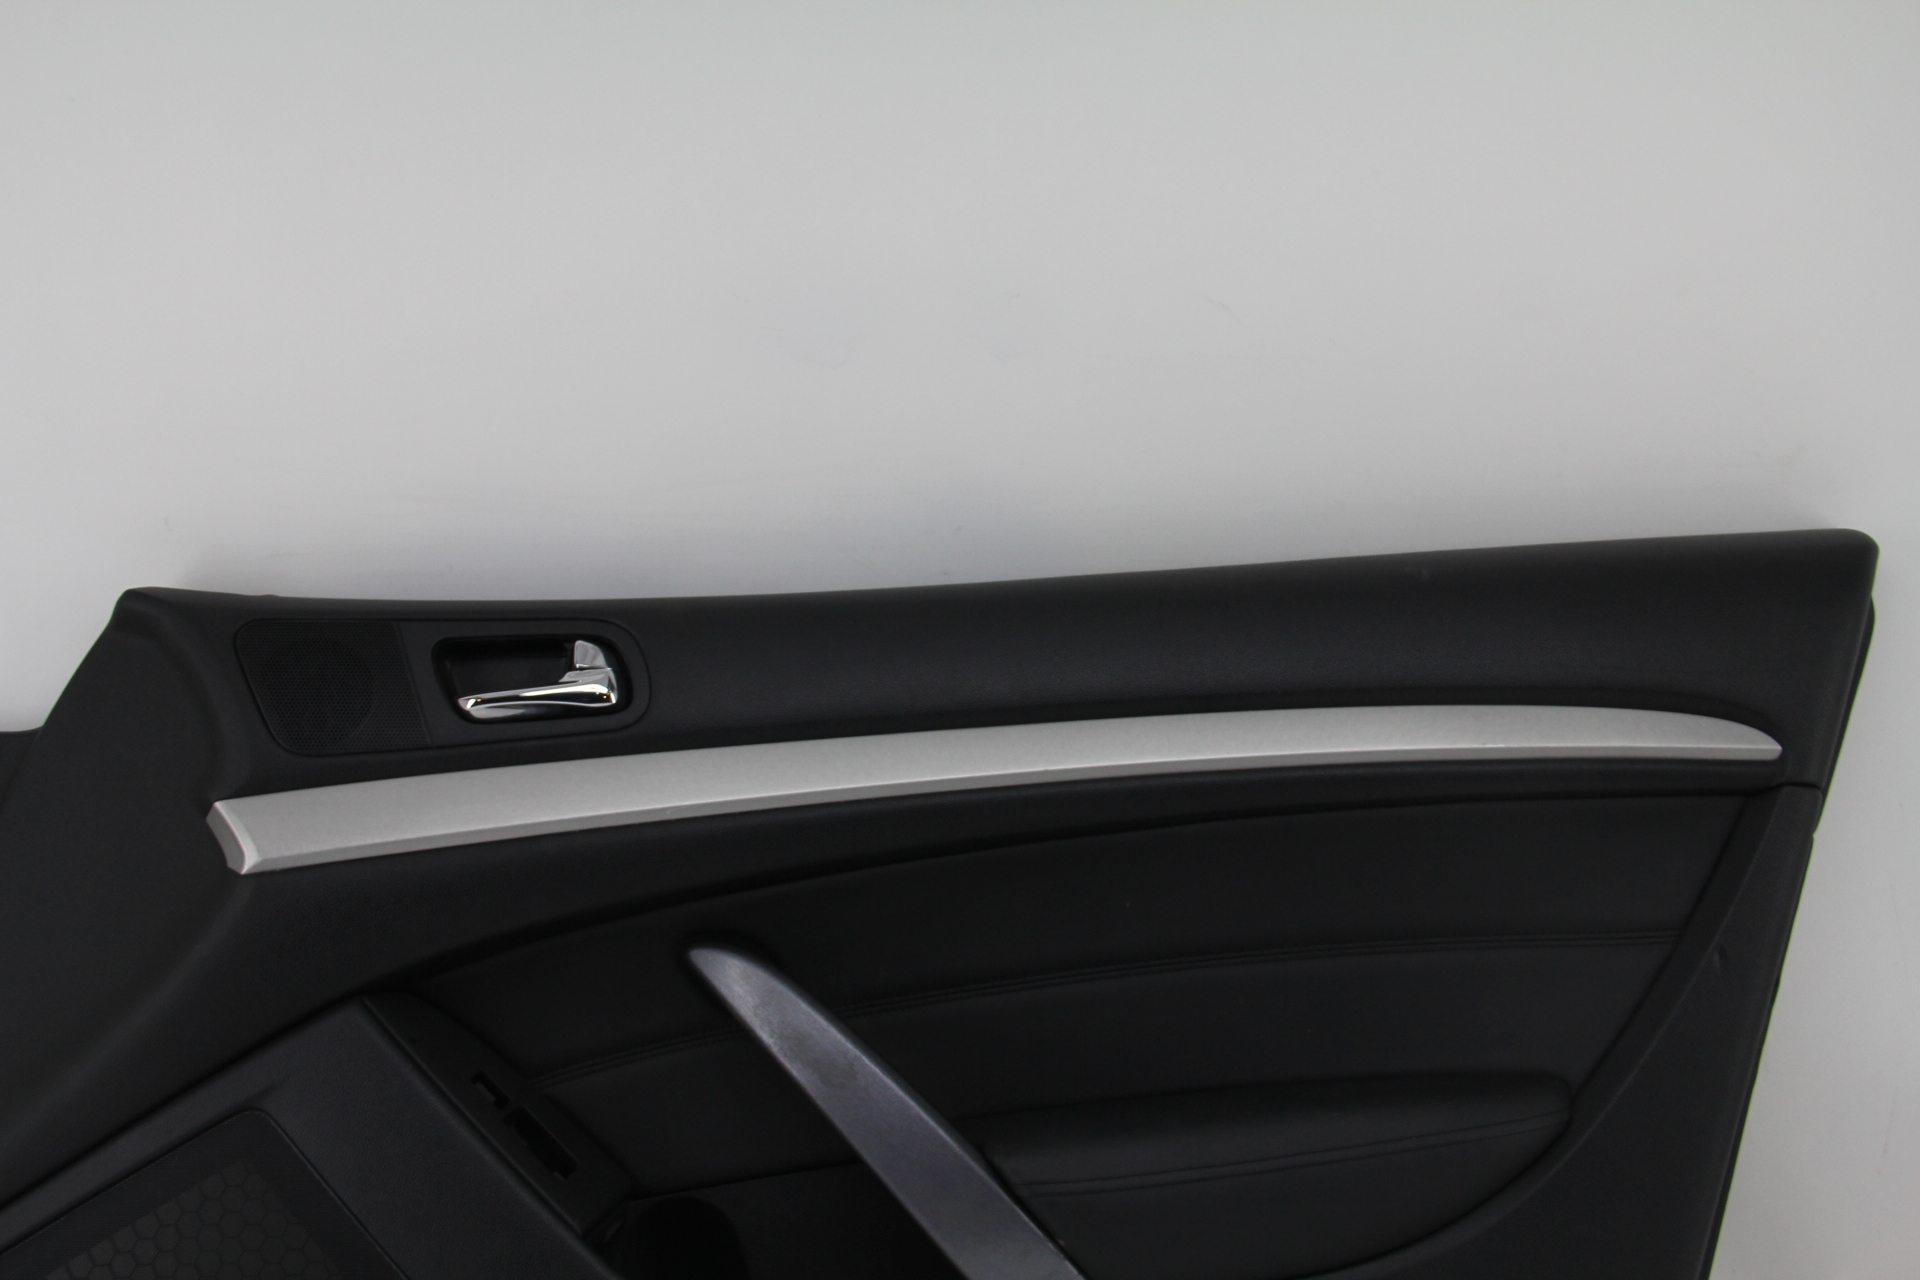 Infiniti G37 Coupe 08 13 Front Right Door Panel Black 80900 Jl02b Extreme Auto Parts